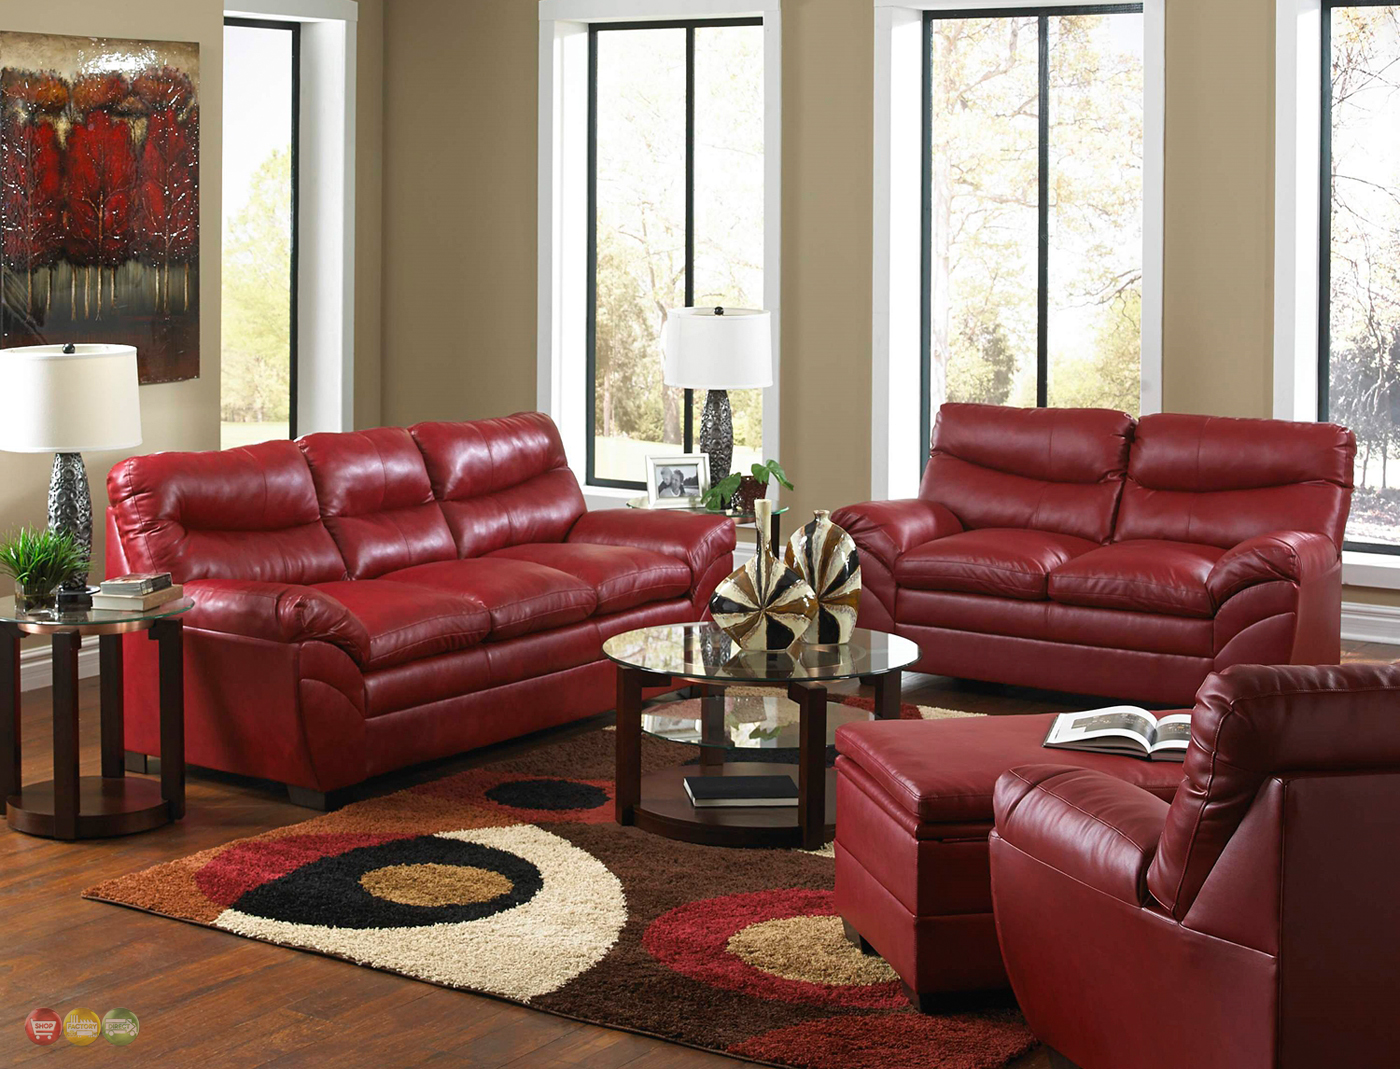 red leather living room furniture sets trend home design and decor